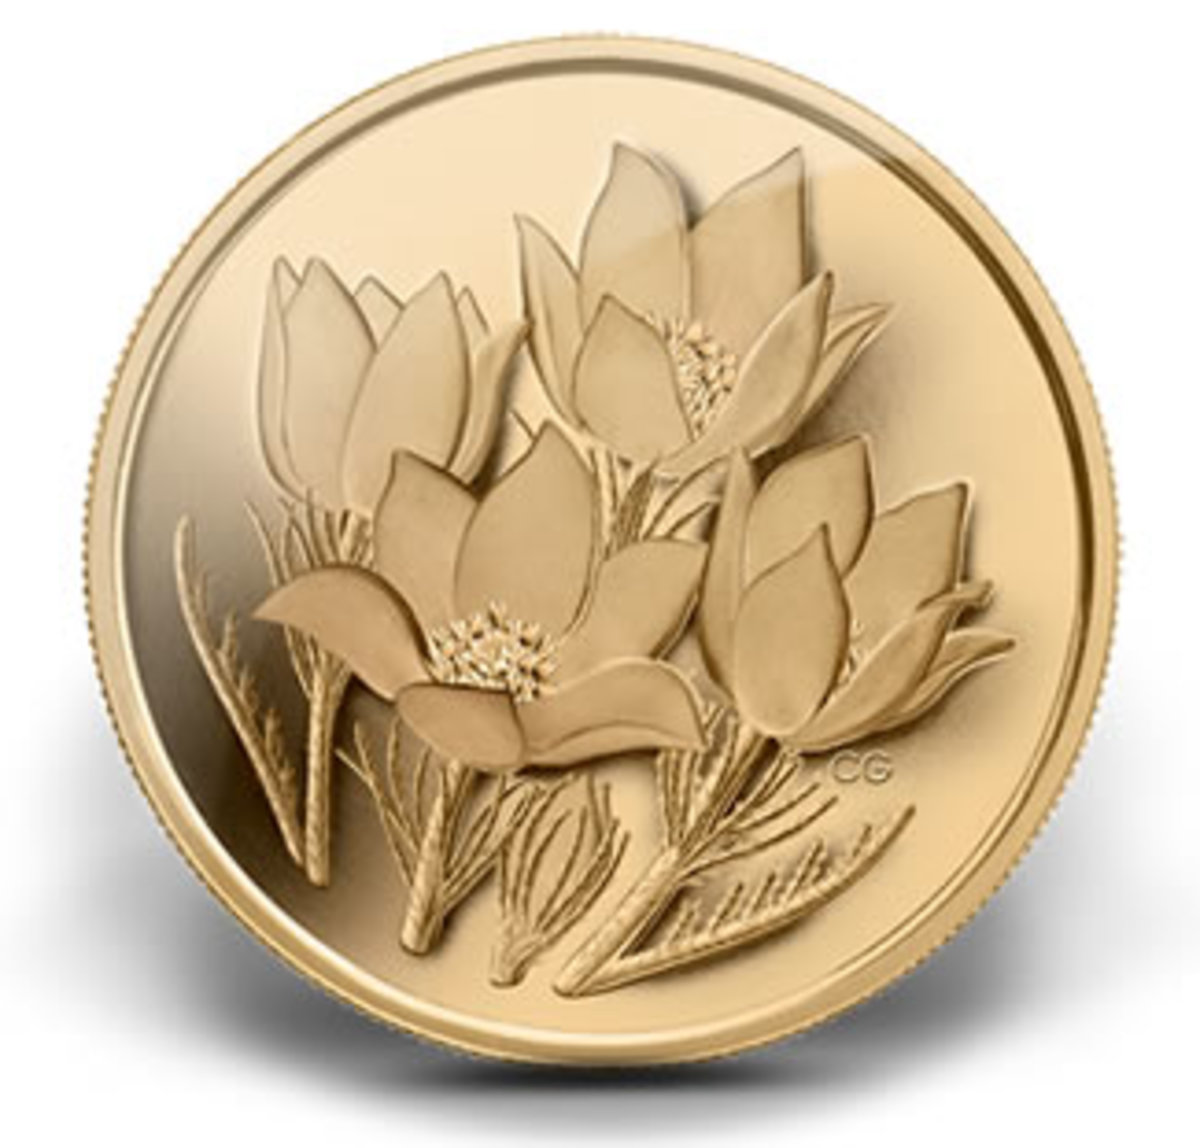 Prairie Crocus (2010) - Worlds Purest Gold Coin (13th in Series)